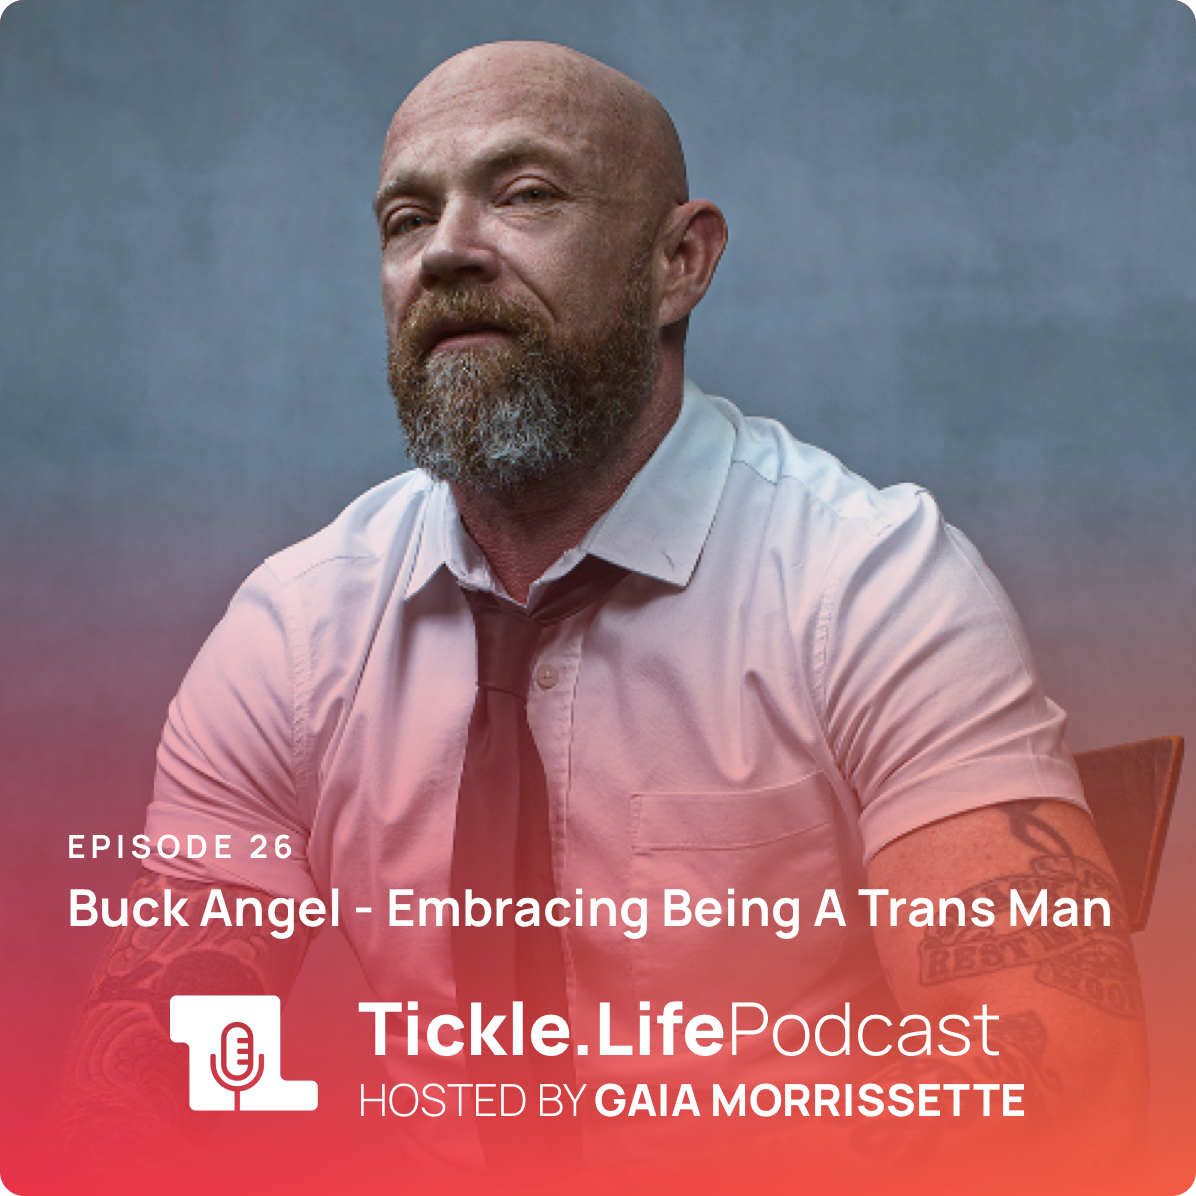 - Buck Angel - Embracing Being A Trans Man